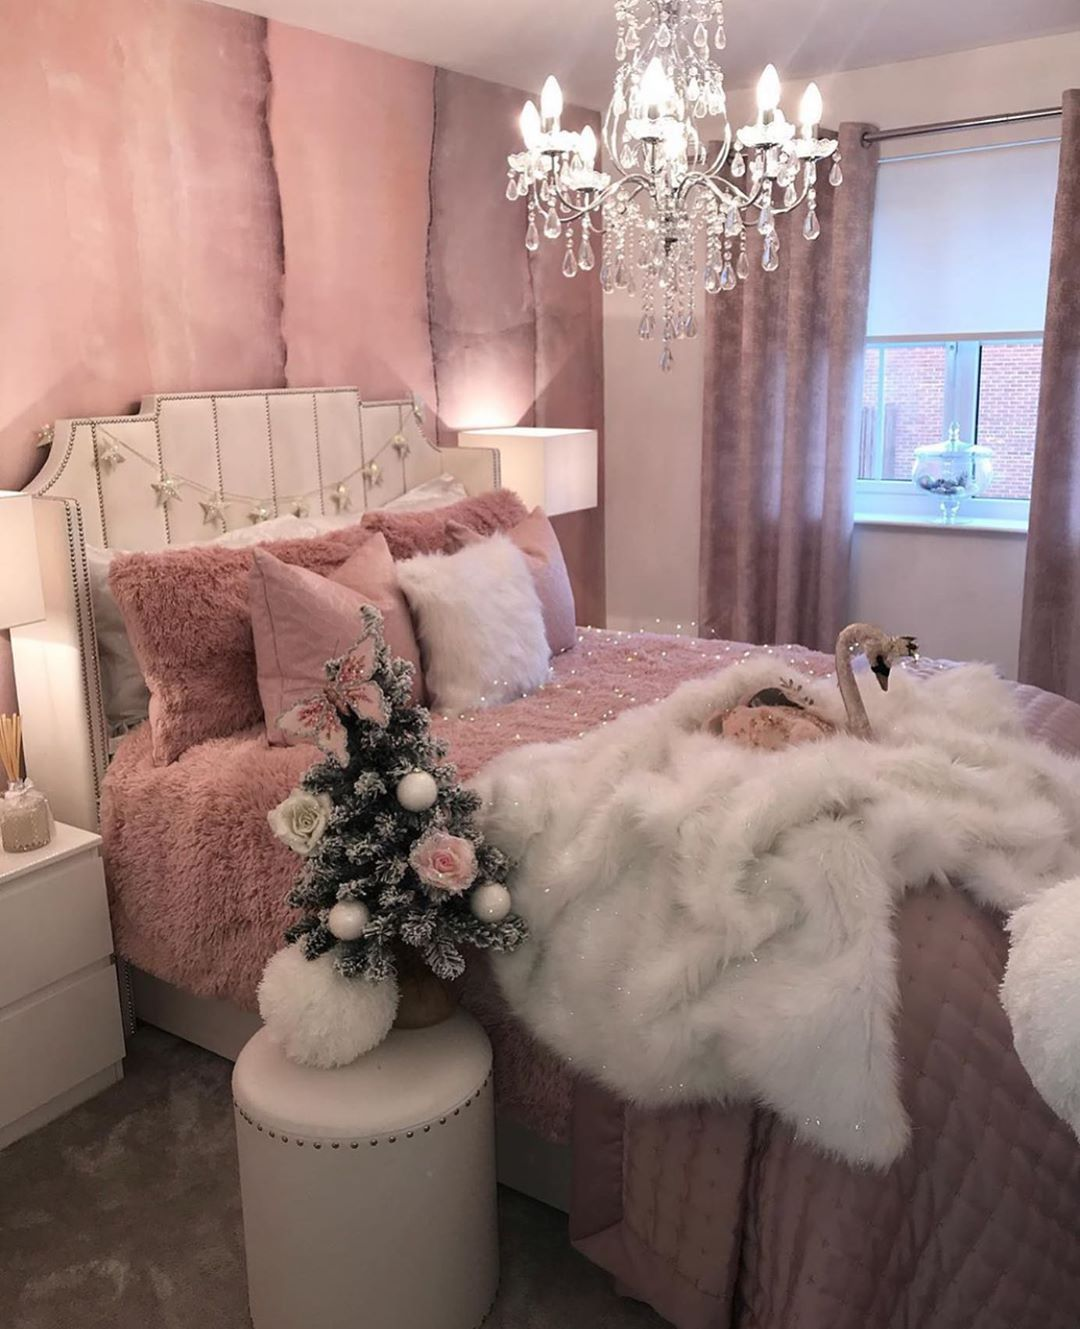 Room For Girl Interior Inspo On Instagram Bedroom Goals Double Tap If You Agree Credit T Room Inspiration Bedroom Girl Bedroom Decor Bedroom Decor